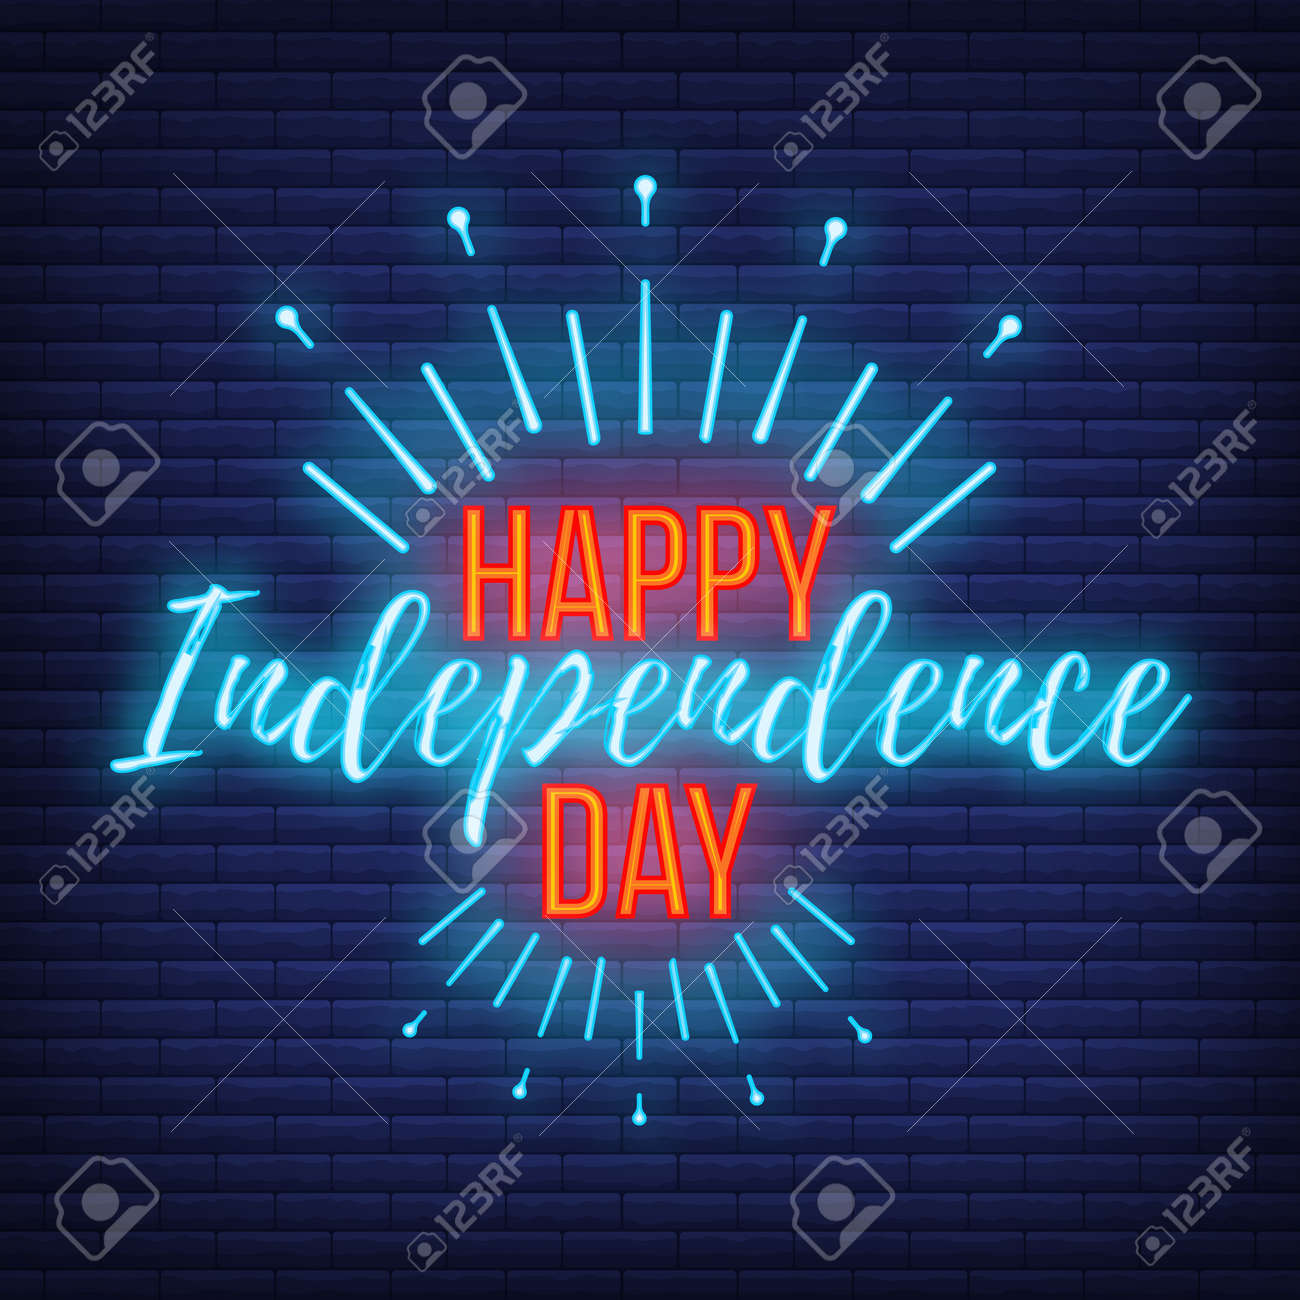 Happy celebration greeting card 4 th July, concept glow neon style font text Independence Day quote phrase vector illustration on black wall background. - 167324101